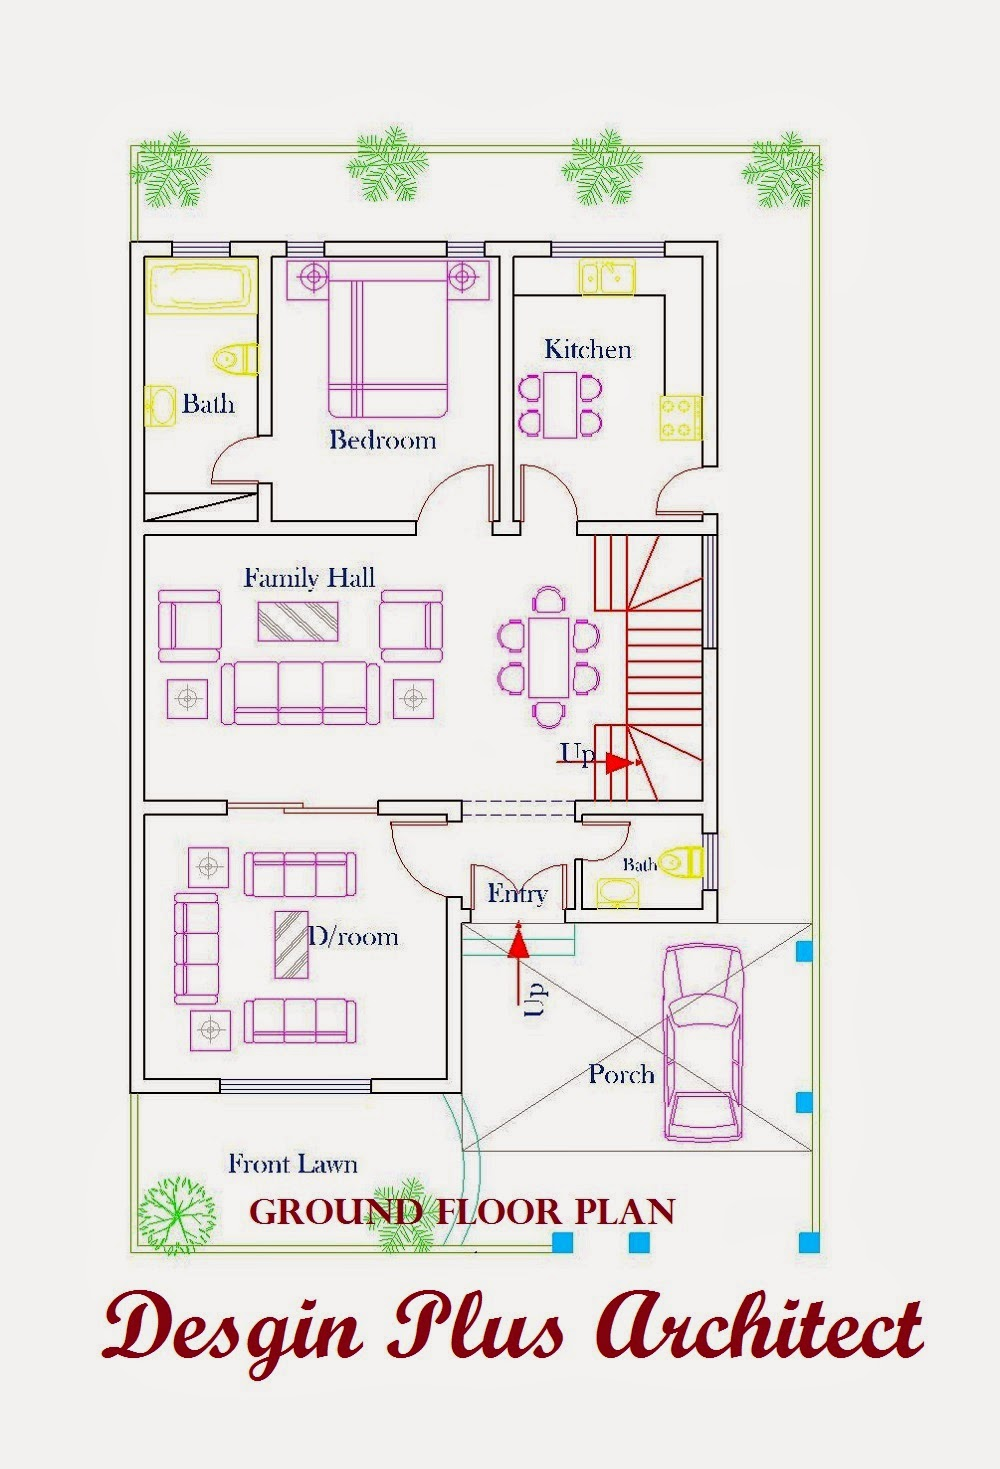 Home Design In Pakistan pakistani home maps design House Plan Design In Pakistan